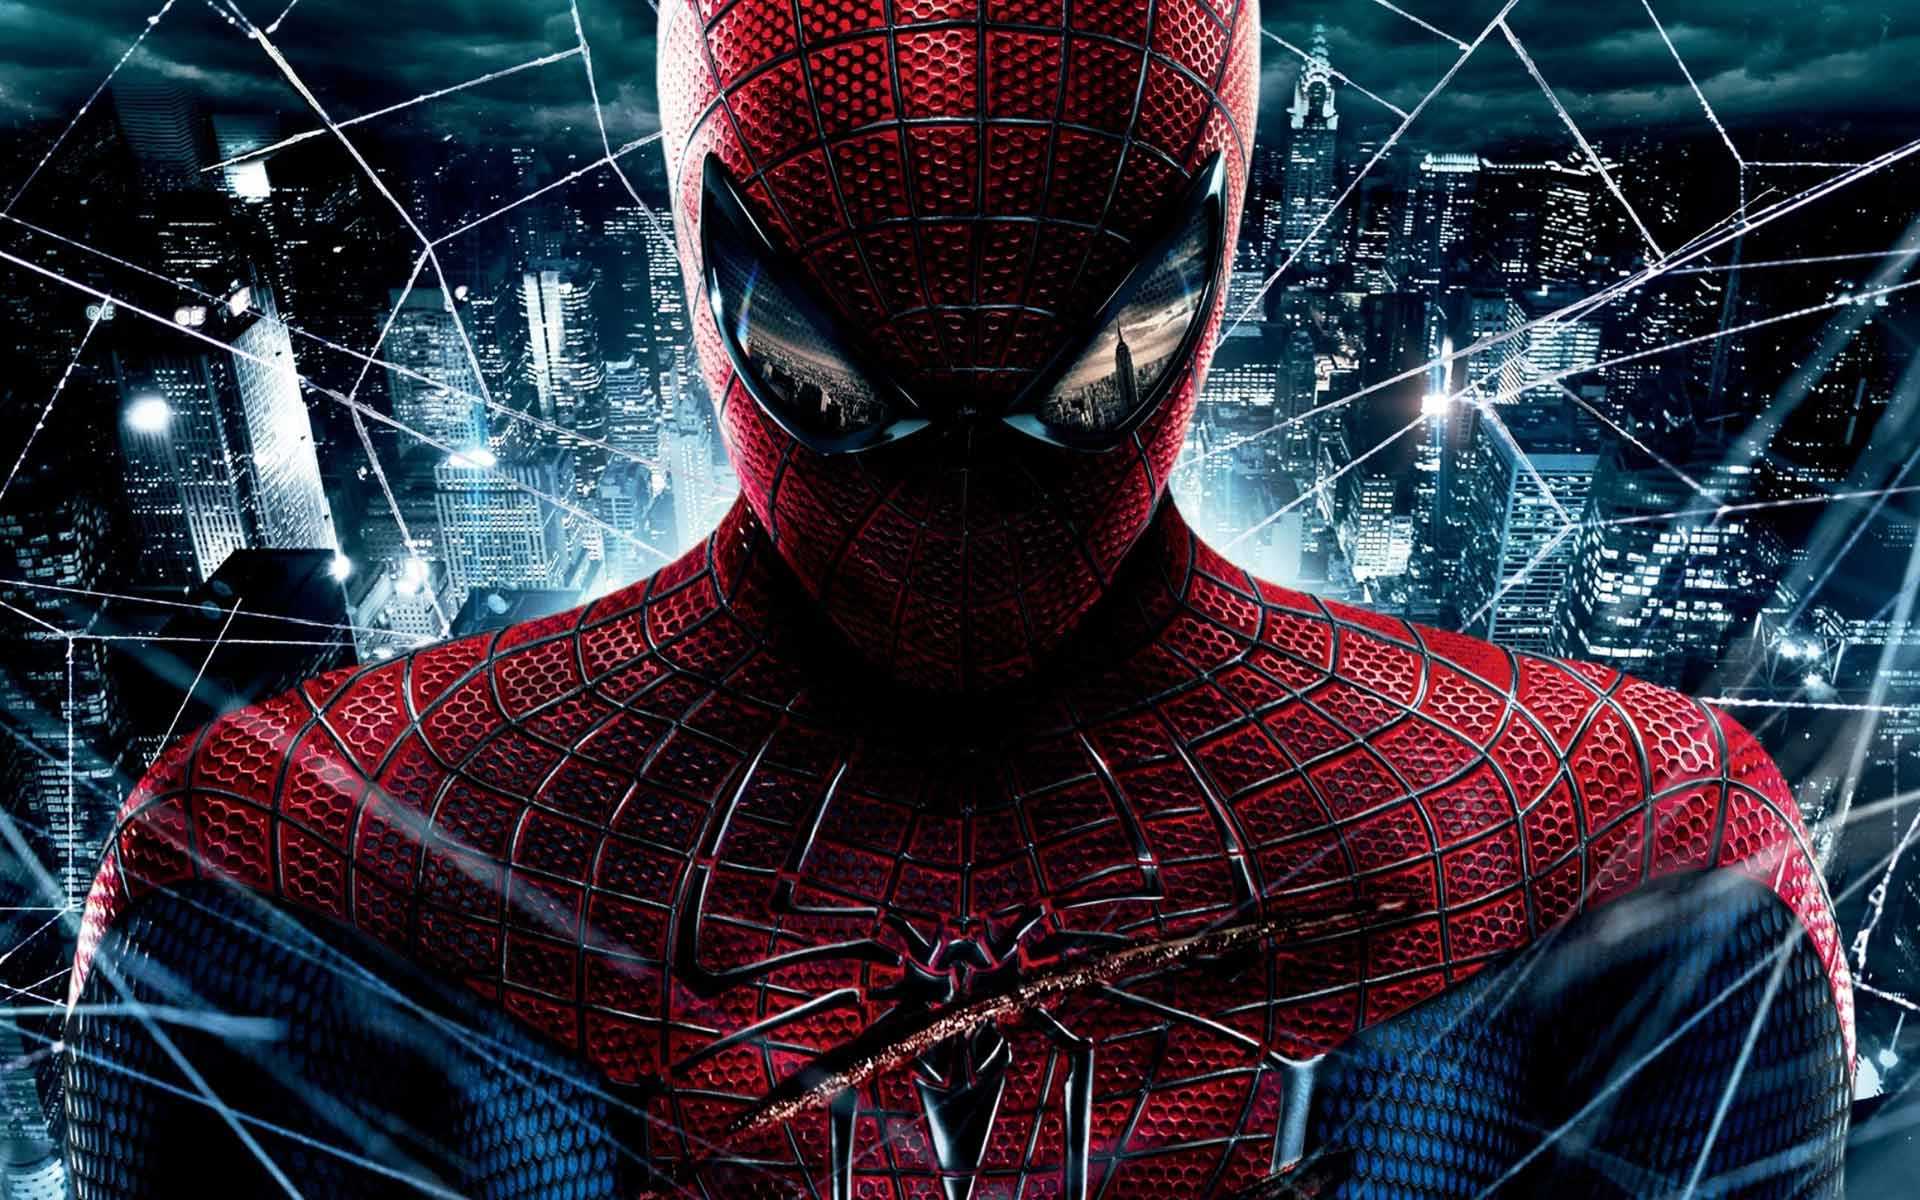 Hd wallpaper spiderman - The Amazing Spider Man 2 Wallpapers Hd Iphone 5 Wallpapers